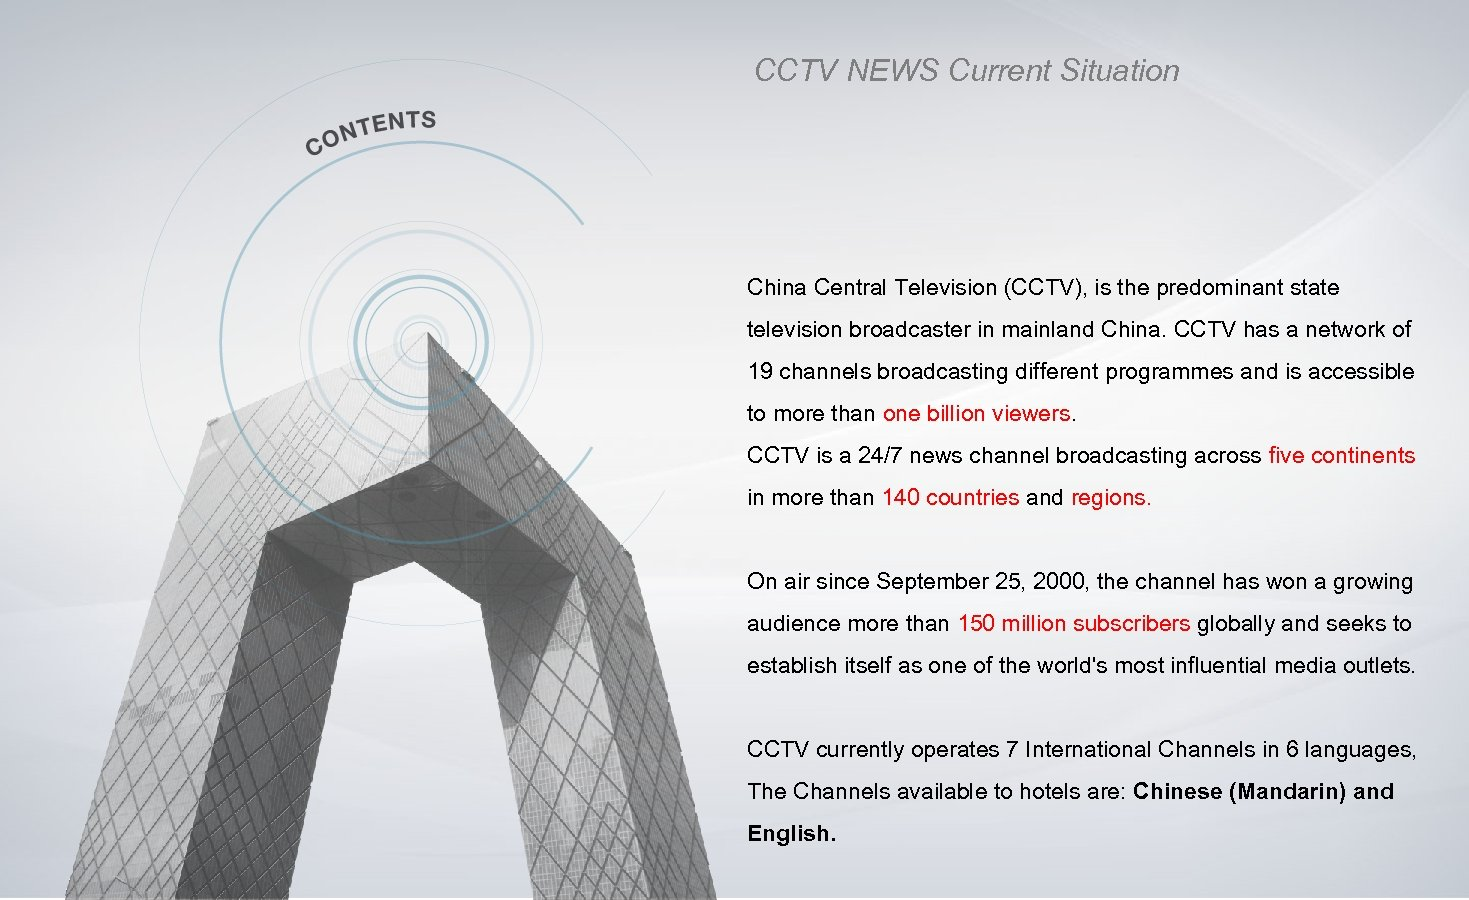 CCTV NEWS Current Situation China Central Television (CCTV), is the predominant state television broadcaster